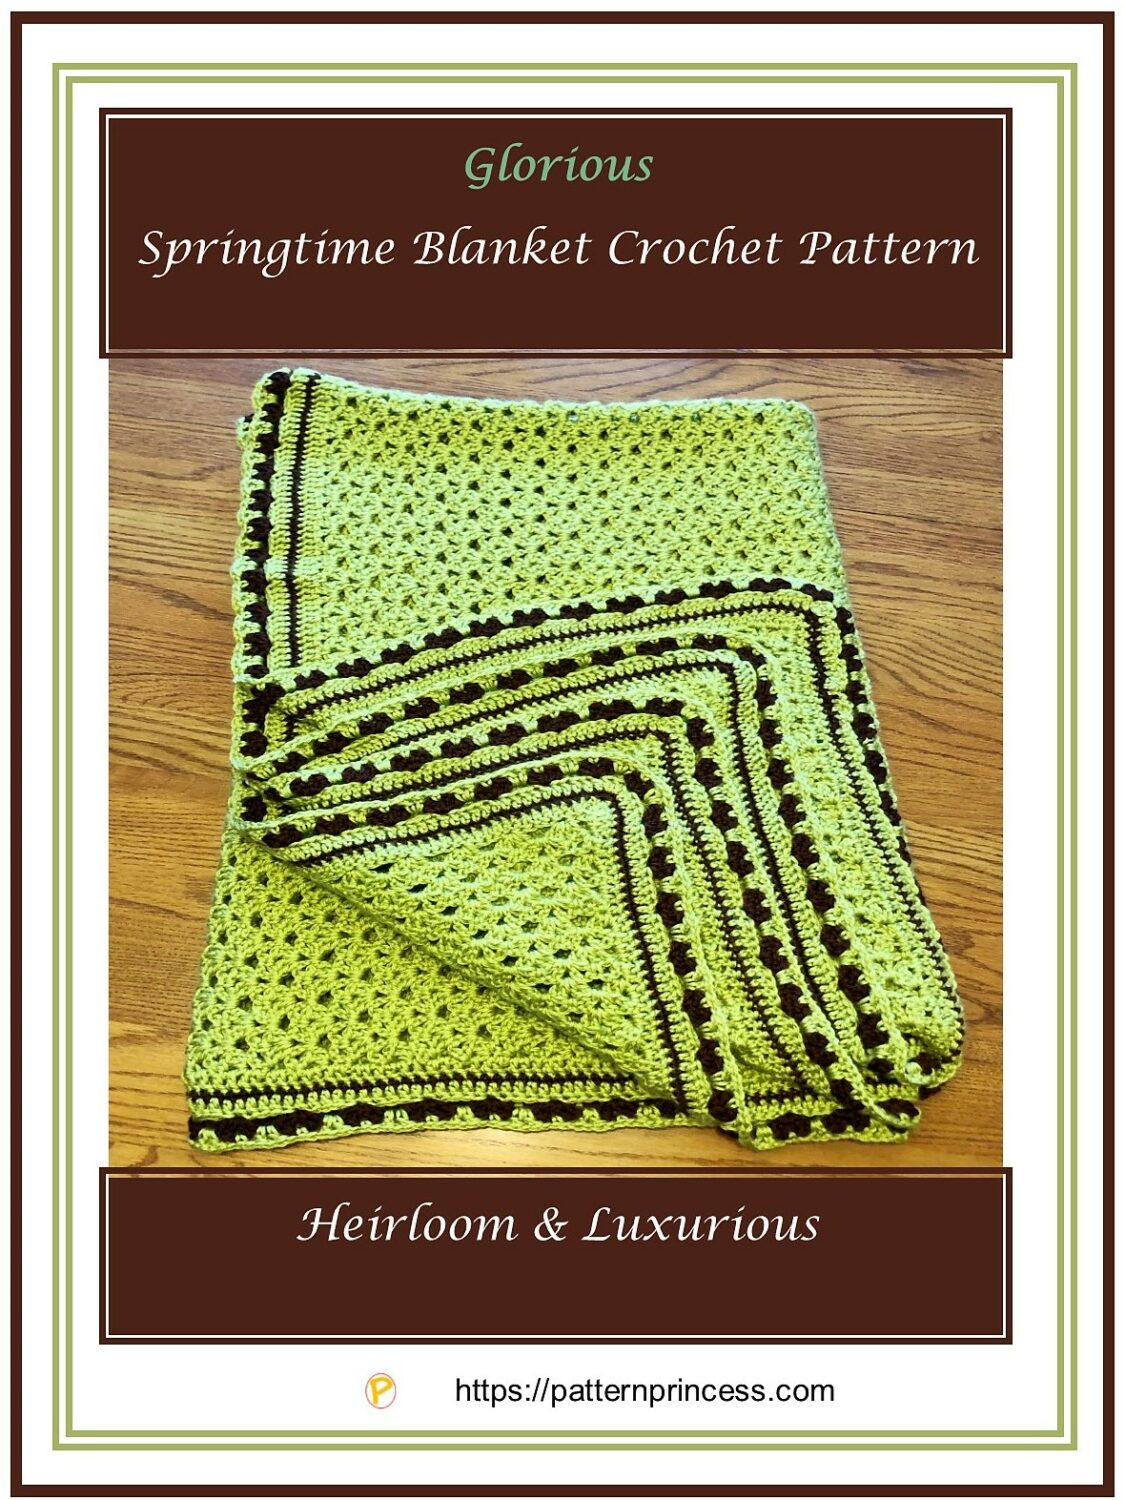 Glorious Springtime Blanket Crochet Pattern 1